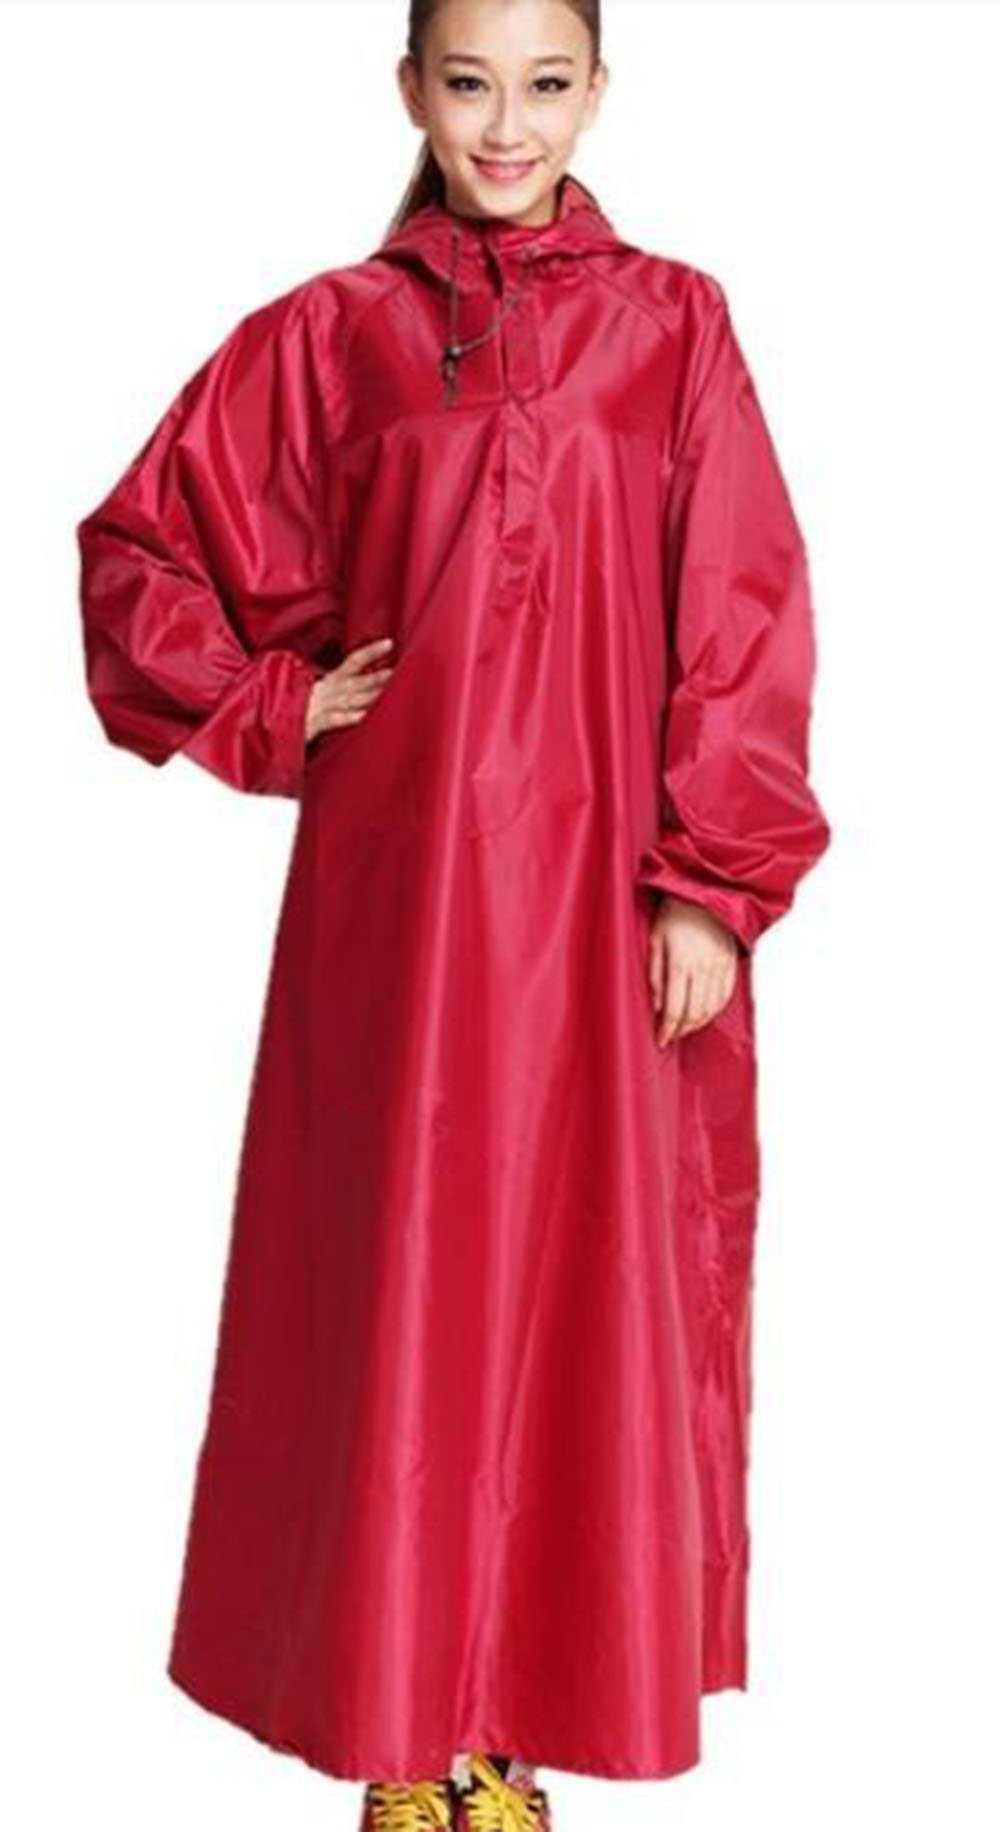 Unisex Hiking/Fishing/Cycling Raincoat Outdoor Rain Cape Poncho (XXXL, Red)